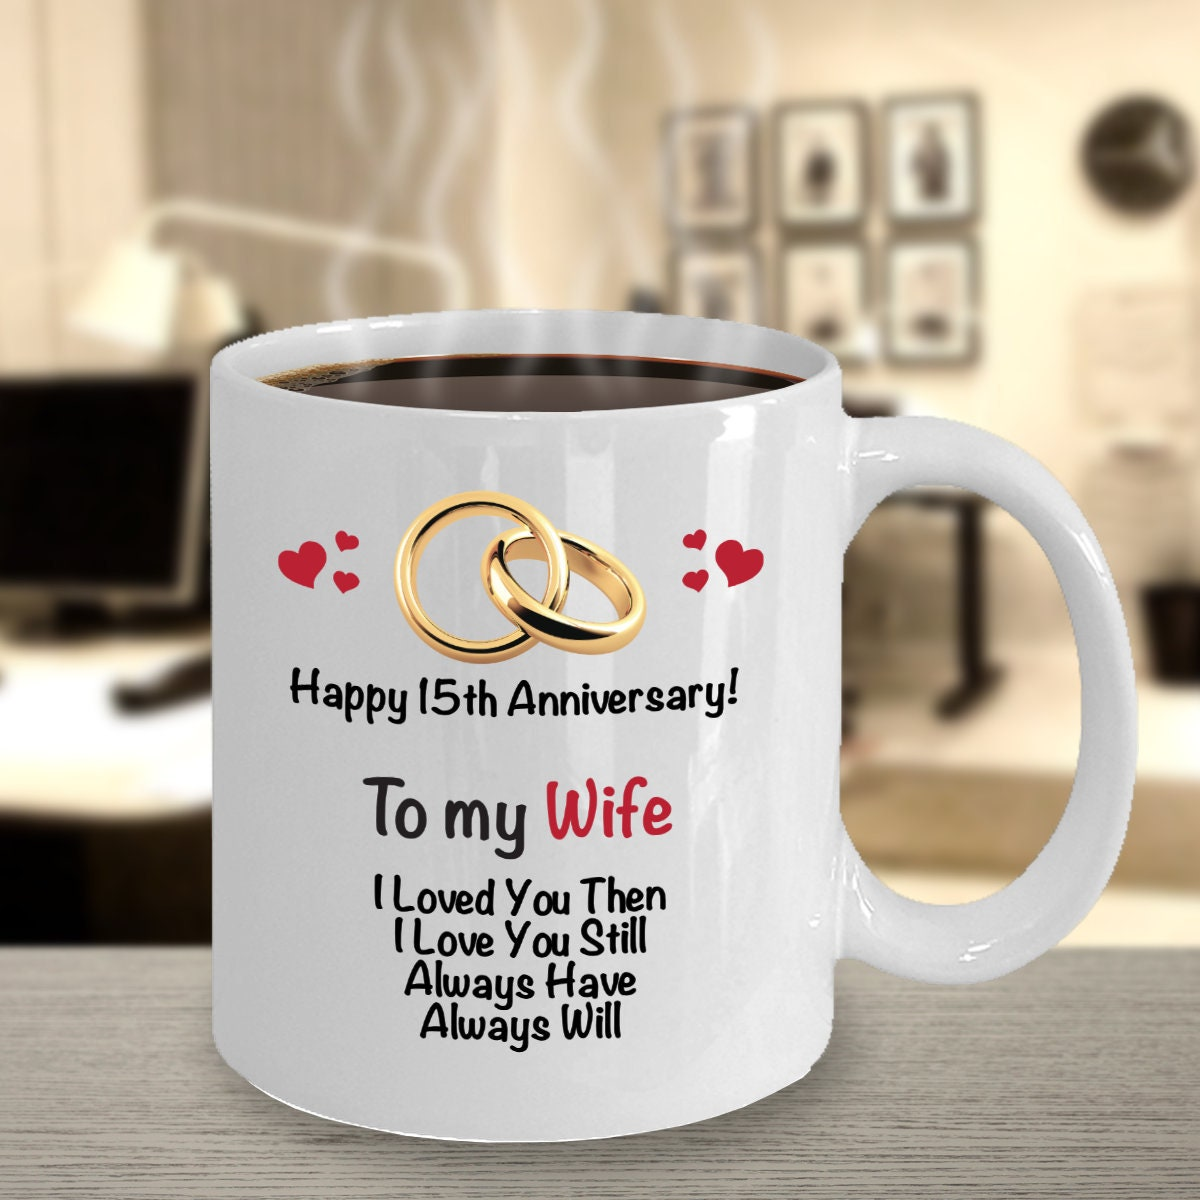 15th Wedding Anniversary Gift For Wife: 15th Anniversary Gift Ideas For Wife 15th Wedding